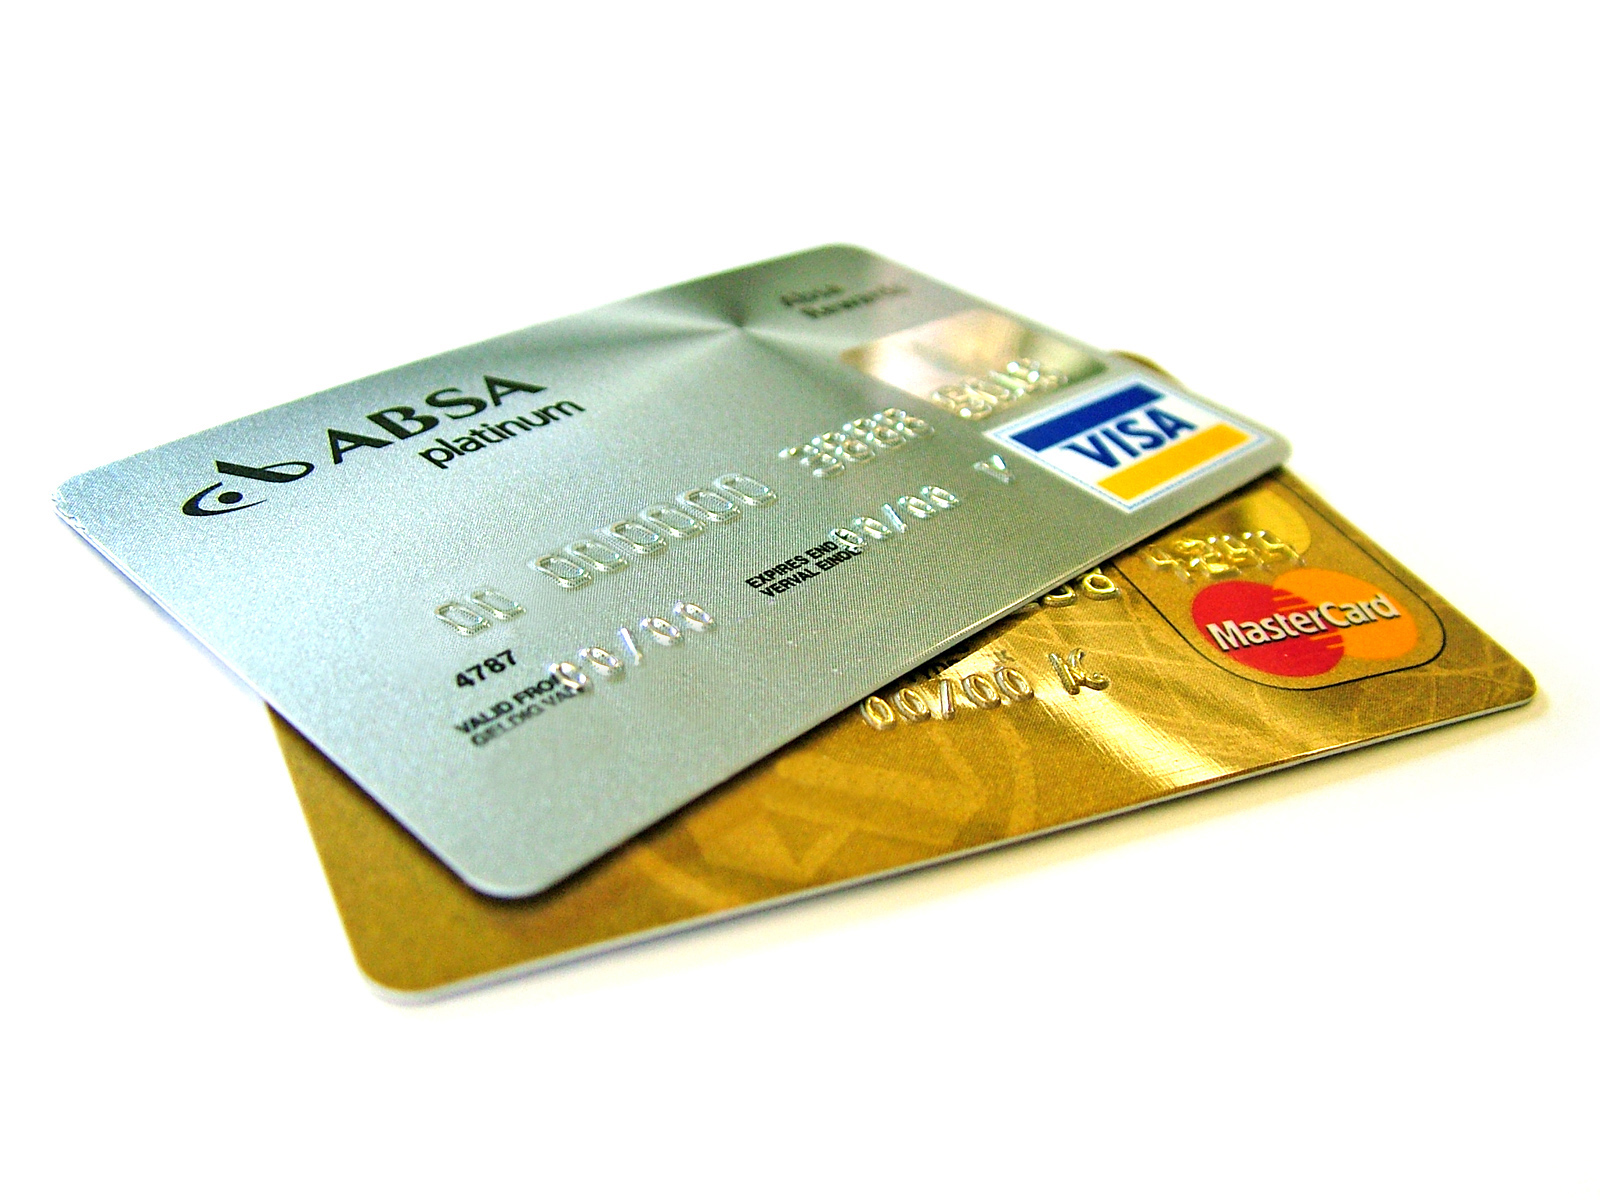 Debit and credit cards offer flexibility to college students when used appropriately. (Courtesy of Lotus Head.)